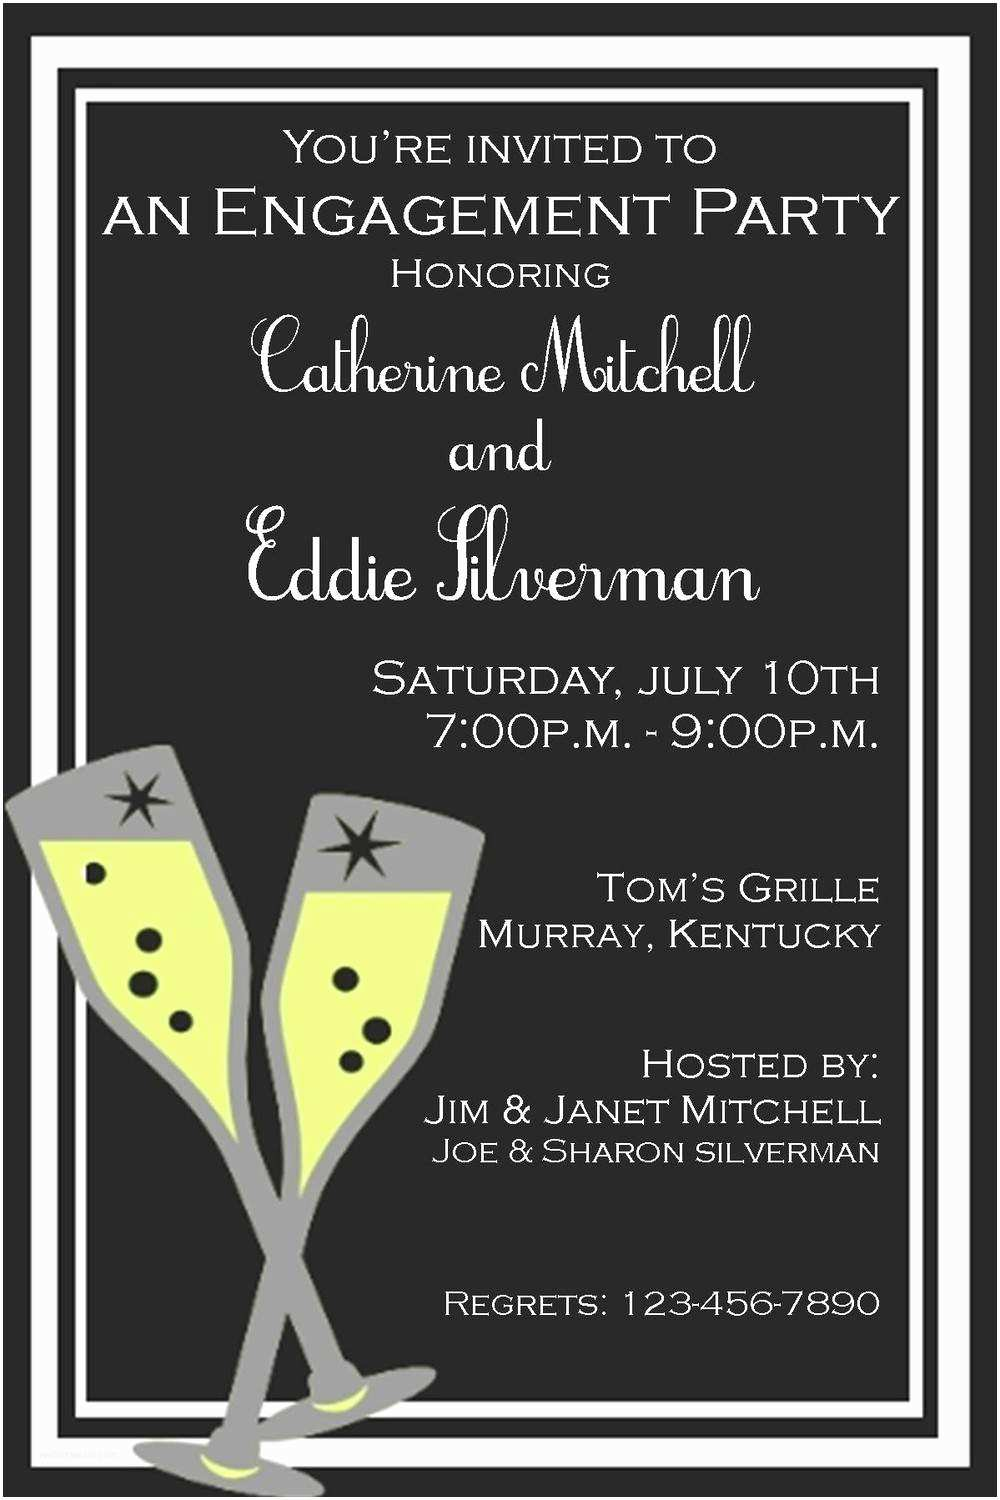 Engagement Party Invitation Free Engagement Party Invitation Templates Mickey Mouse